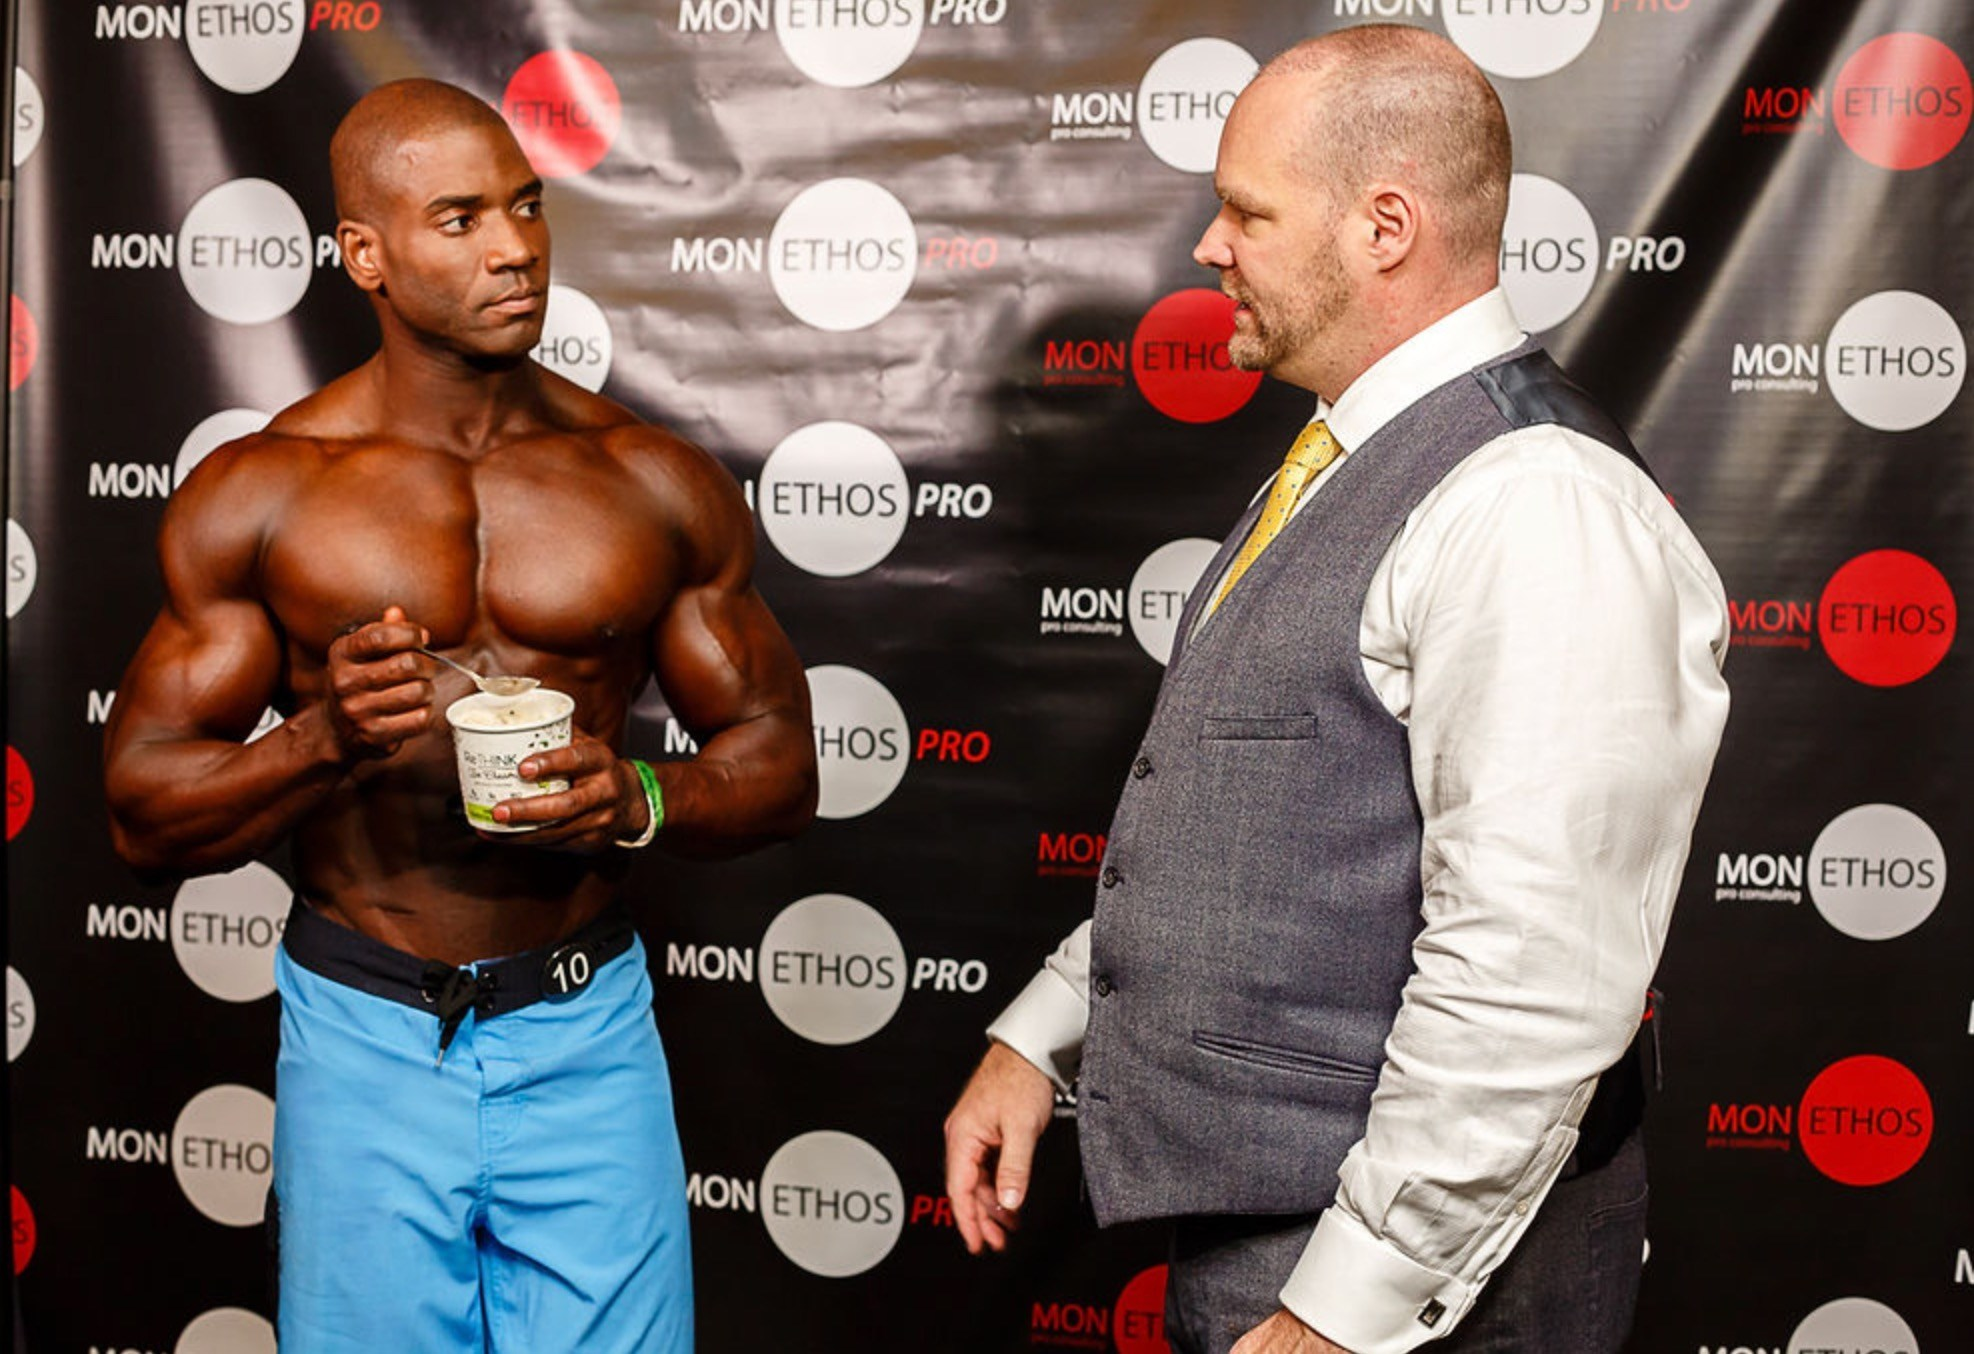 IFBB Pro and Mon Ethos Pro Athlete Xavisus Gayden and Mon Ethos President David Whitaker